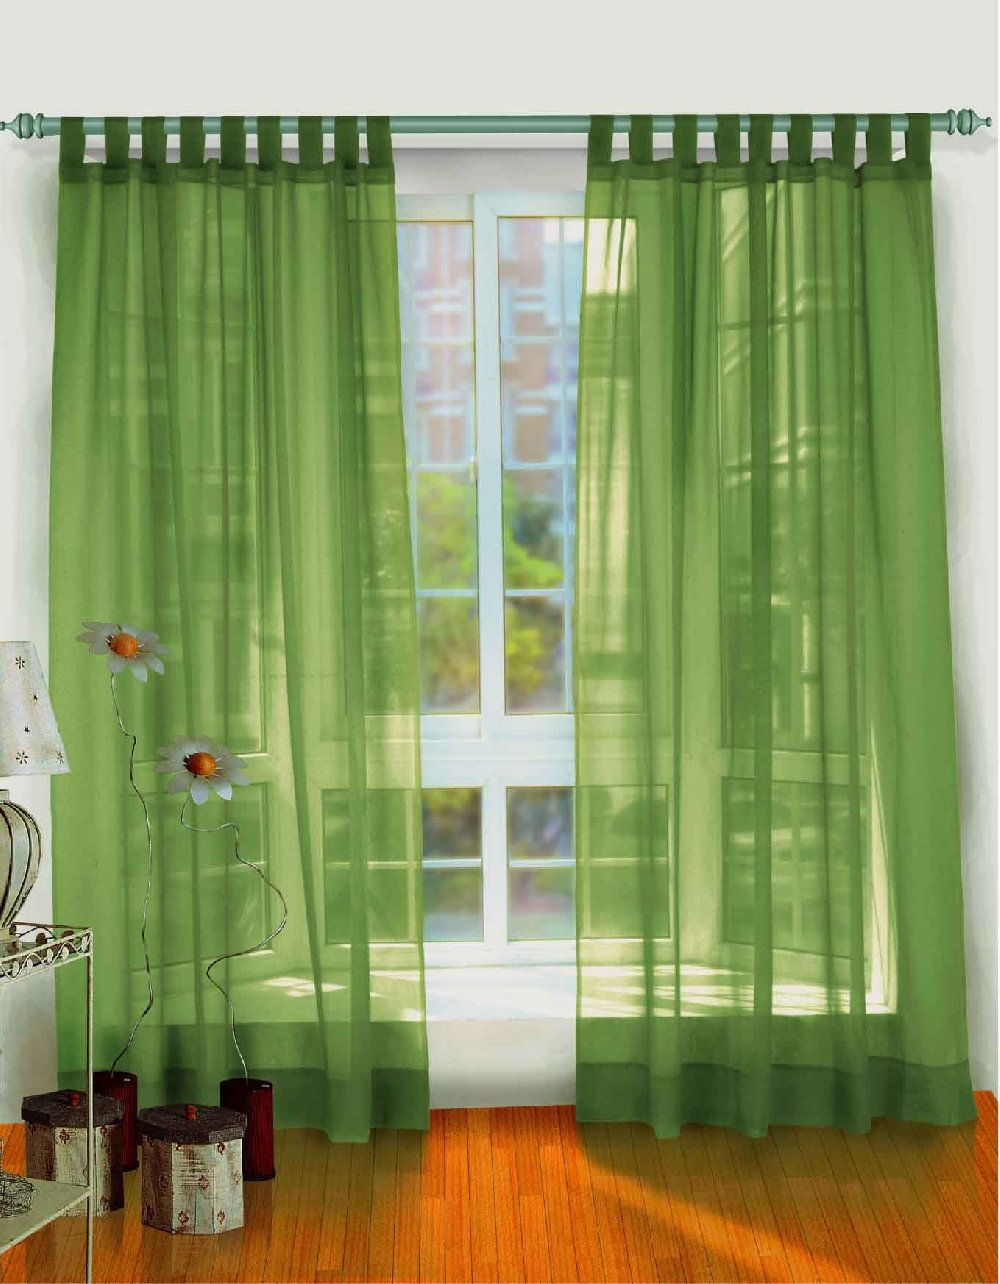 Cafe Style Day Curtain